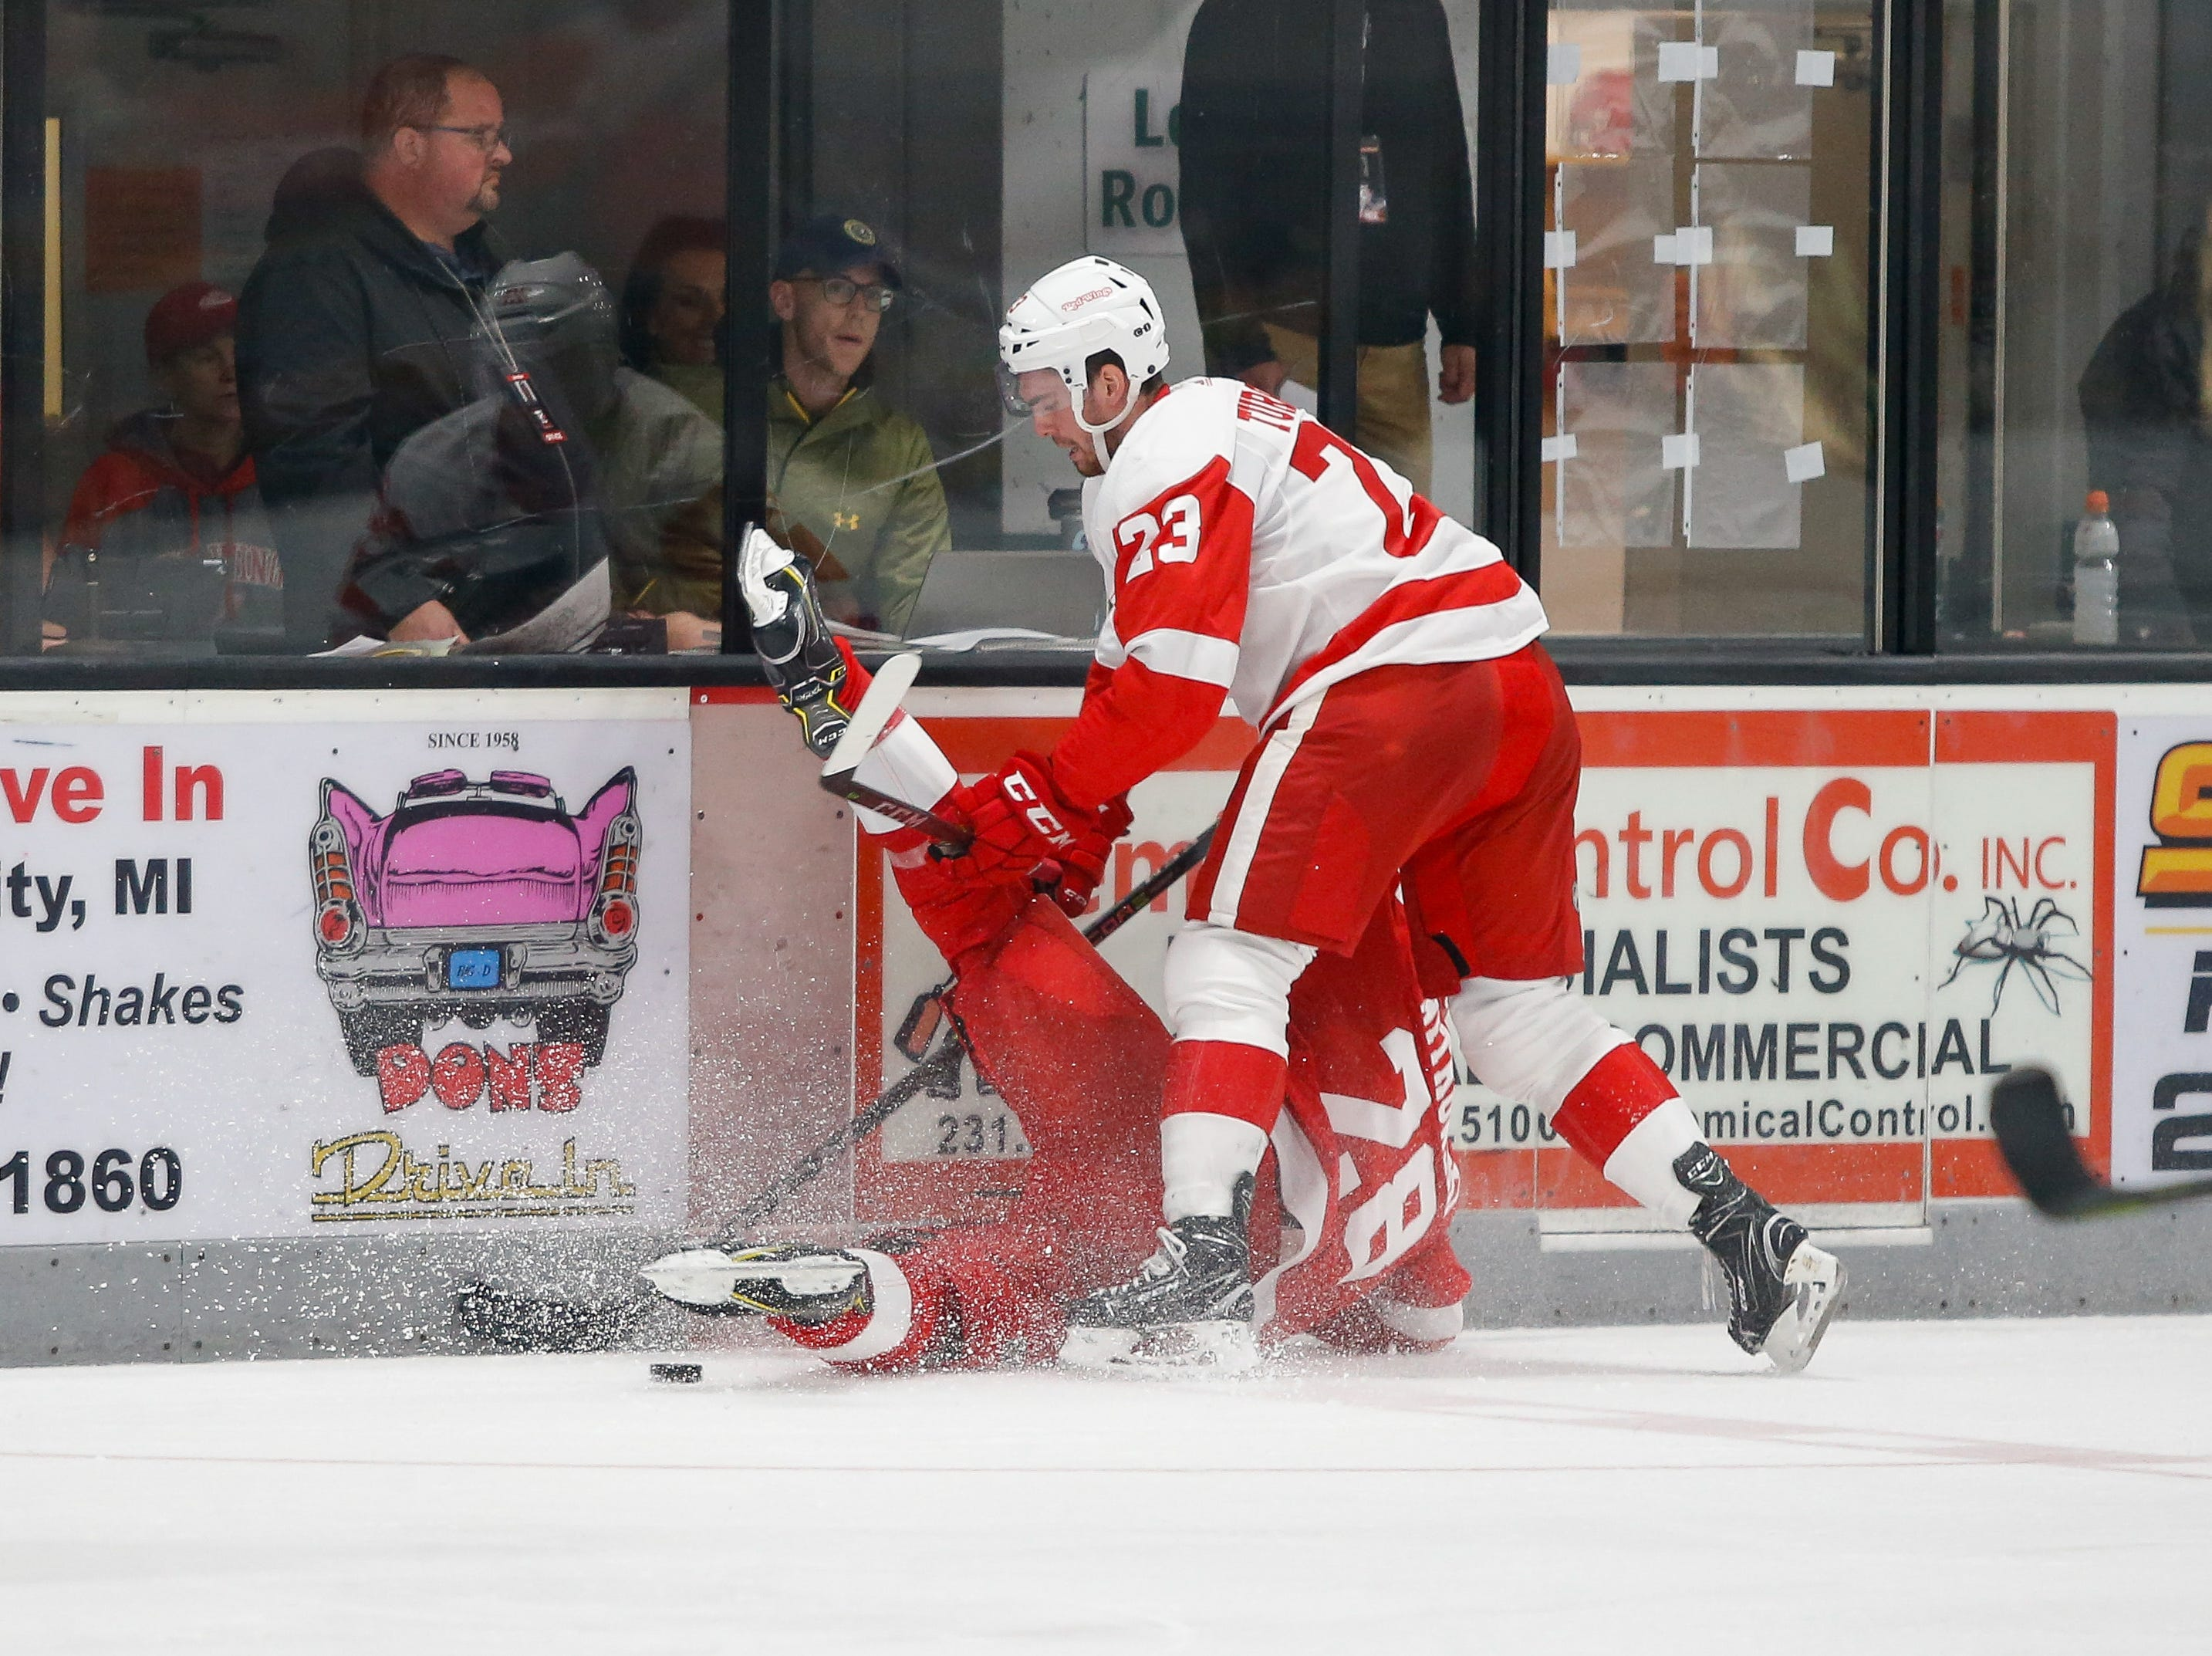 Luke Witkowski is upended along the boards in a puck battle with Dominic Turgeon (23).